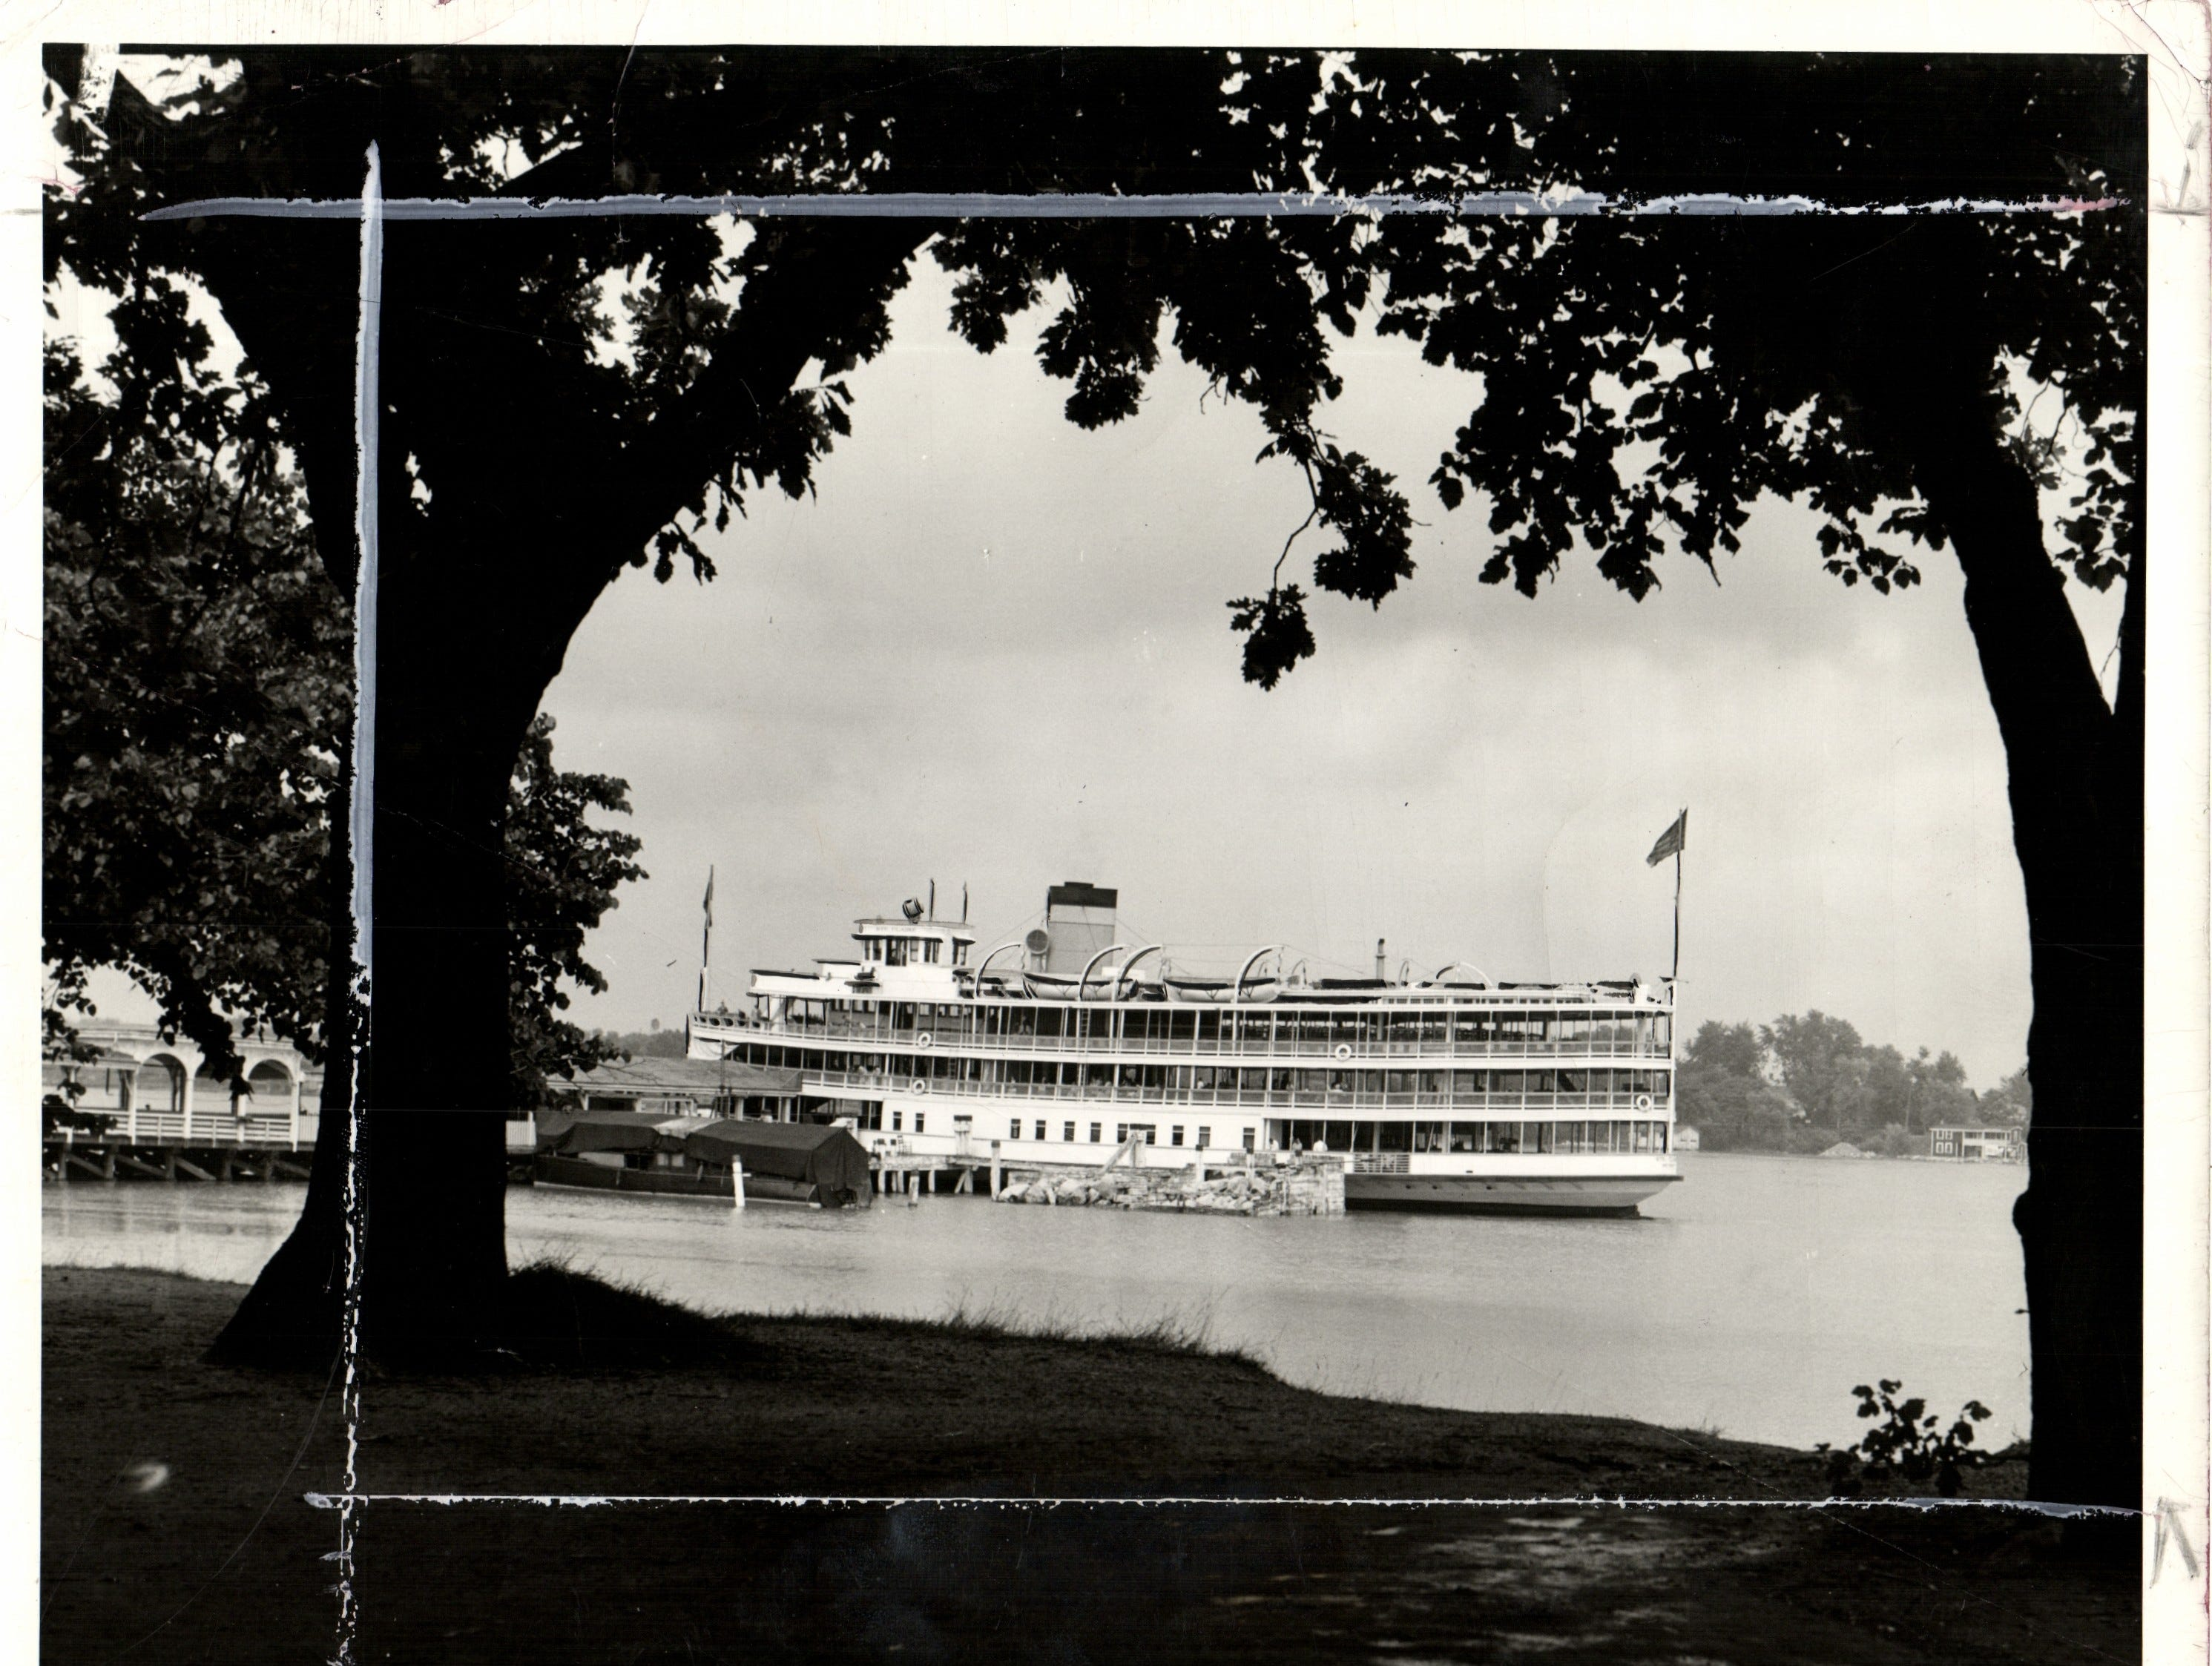 The Ste. Claire waits at the Boblo Island dock in 1942.